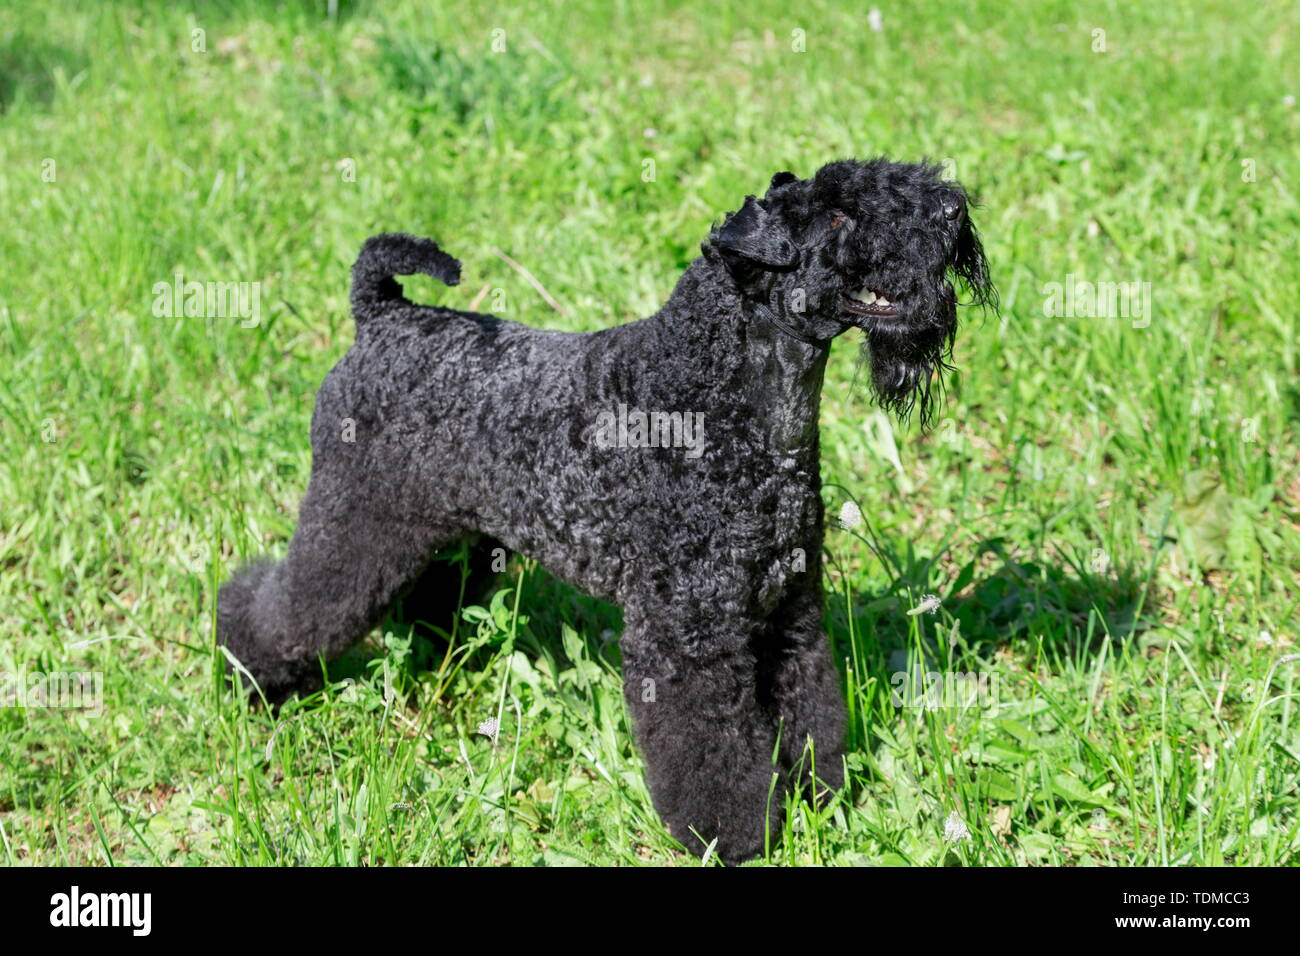 Cute kerry blue terrier is standing on a green grass in the park. Pet animals. Purebred dog. - Stock Image